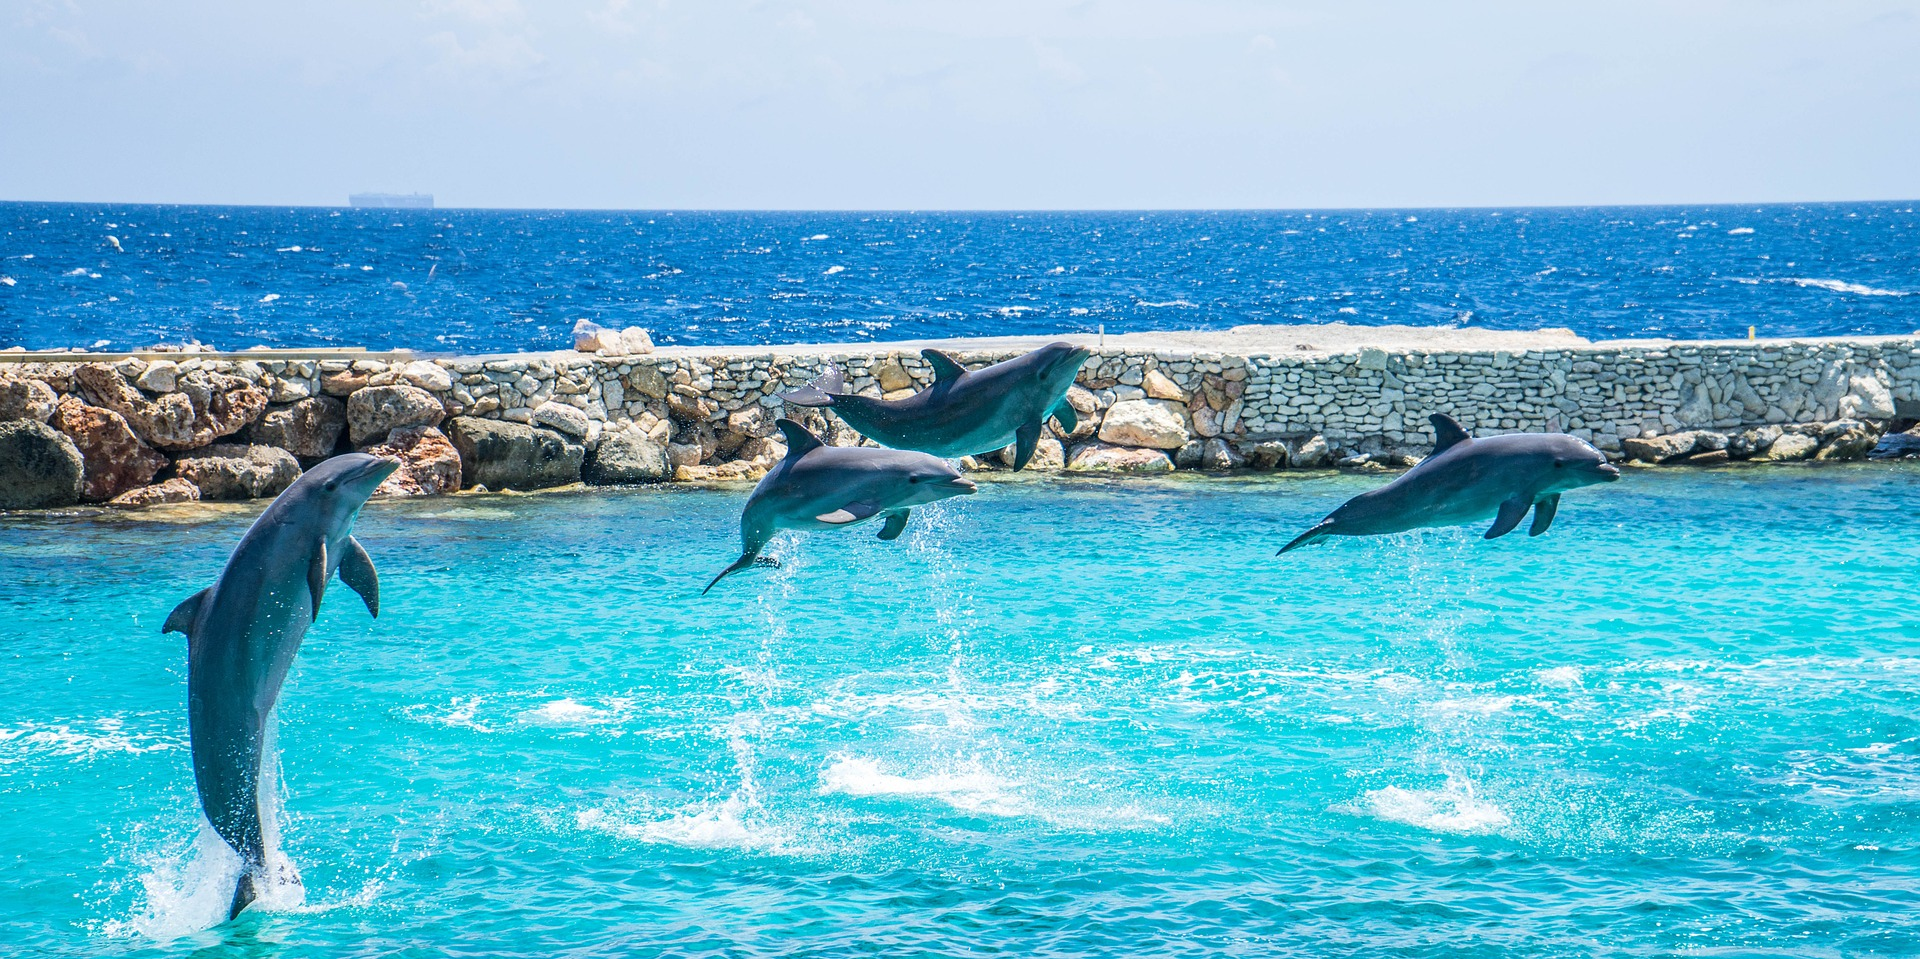 dolphins-920068_1920